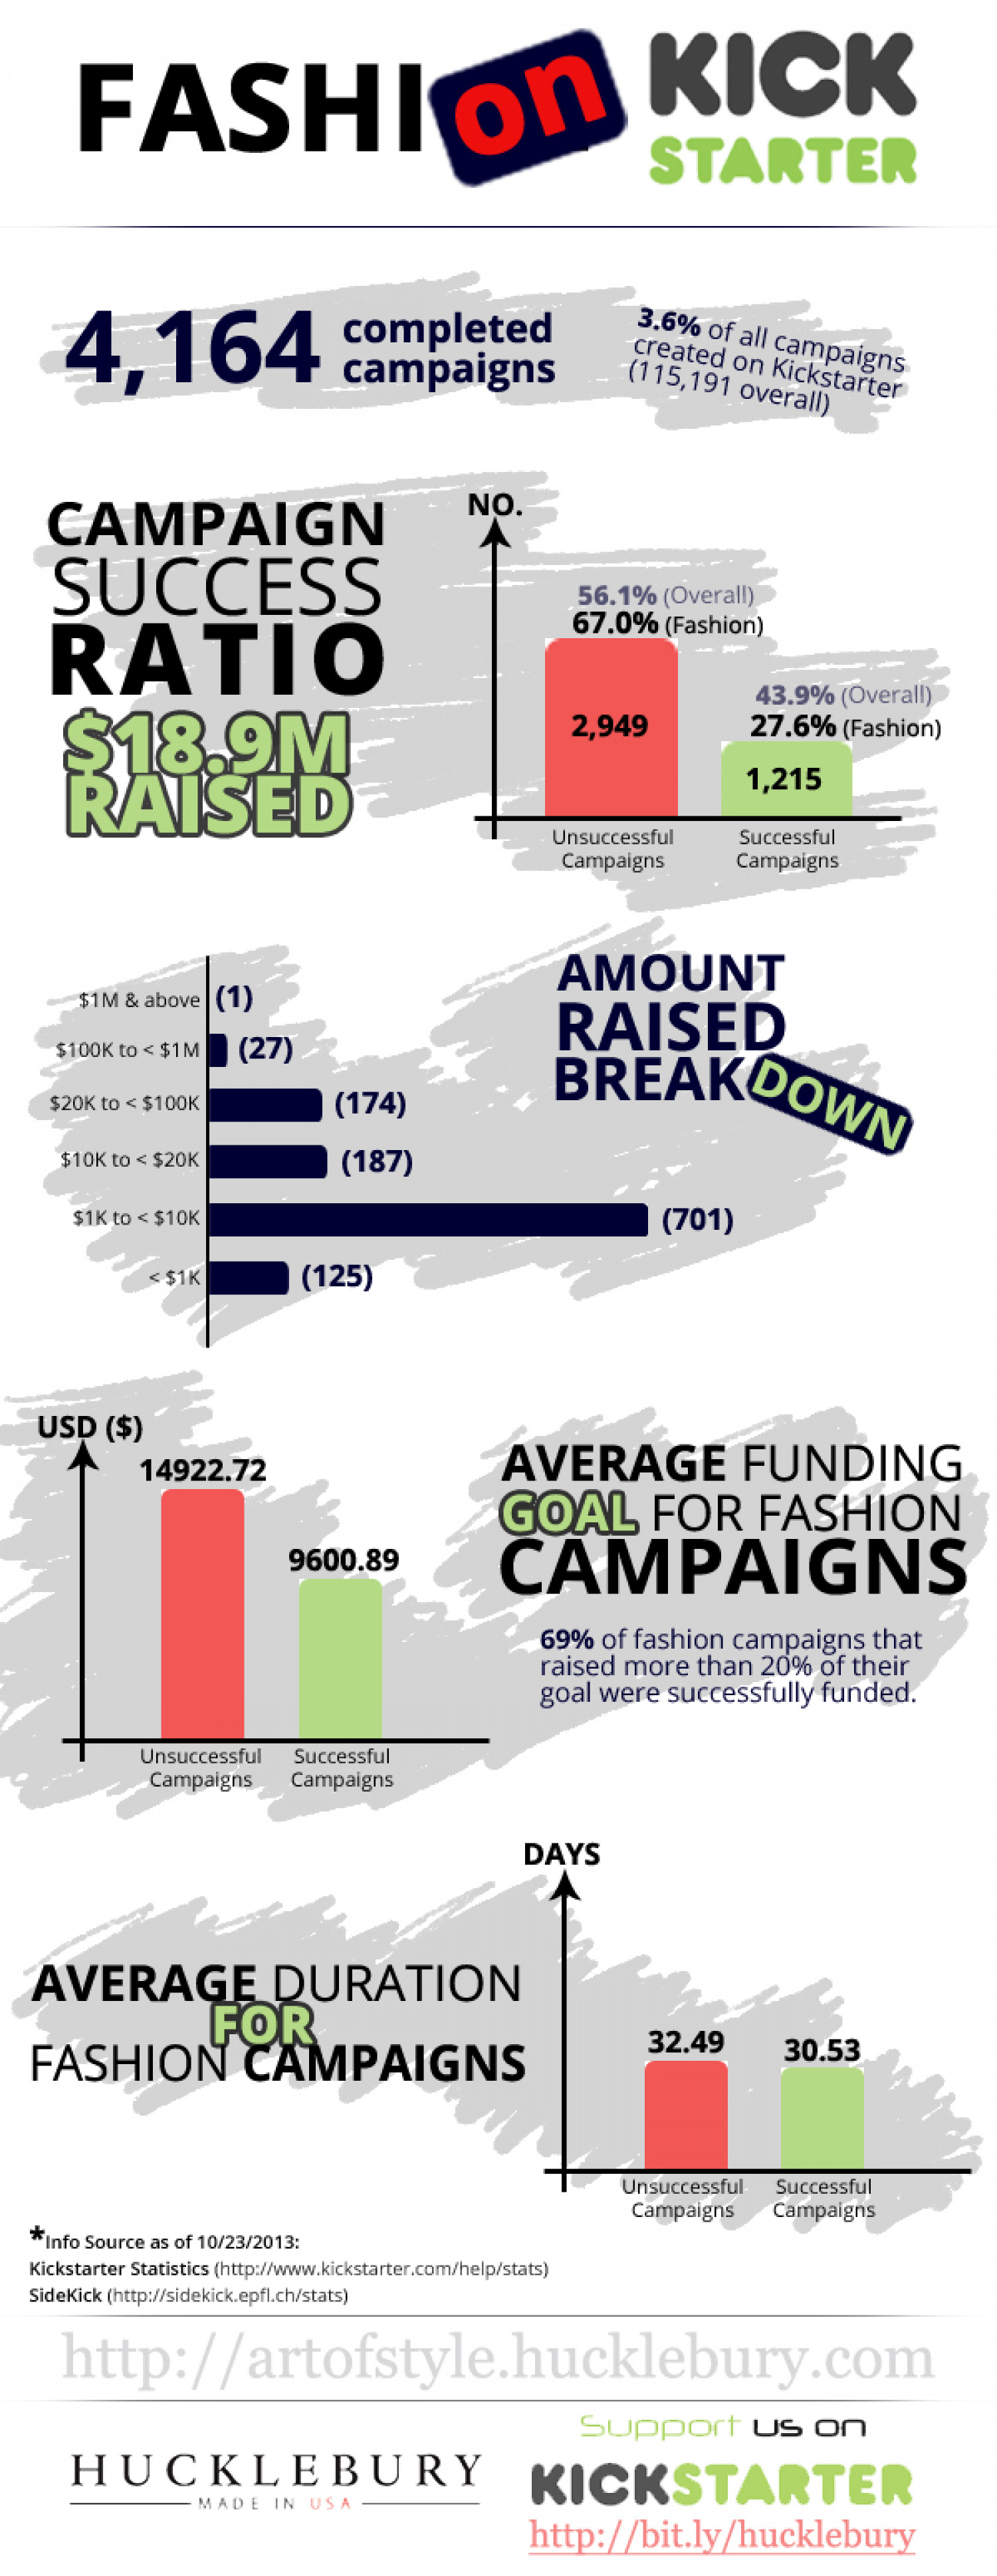 Fashion on Kickstarter Infographic